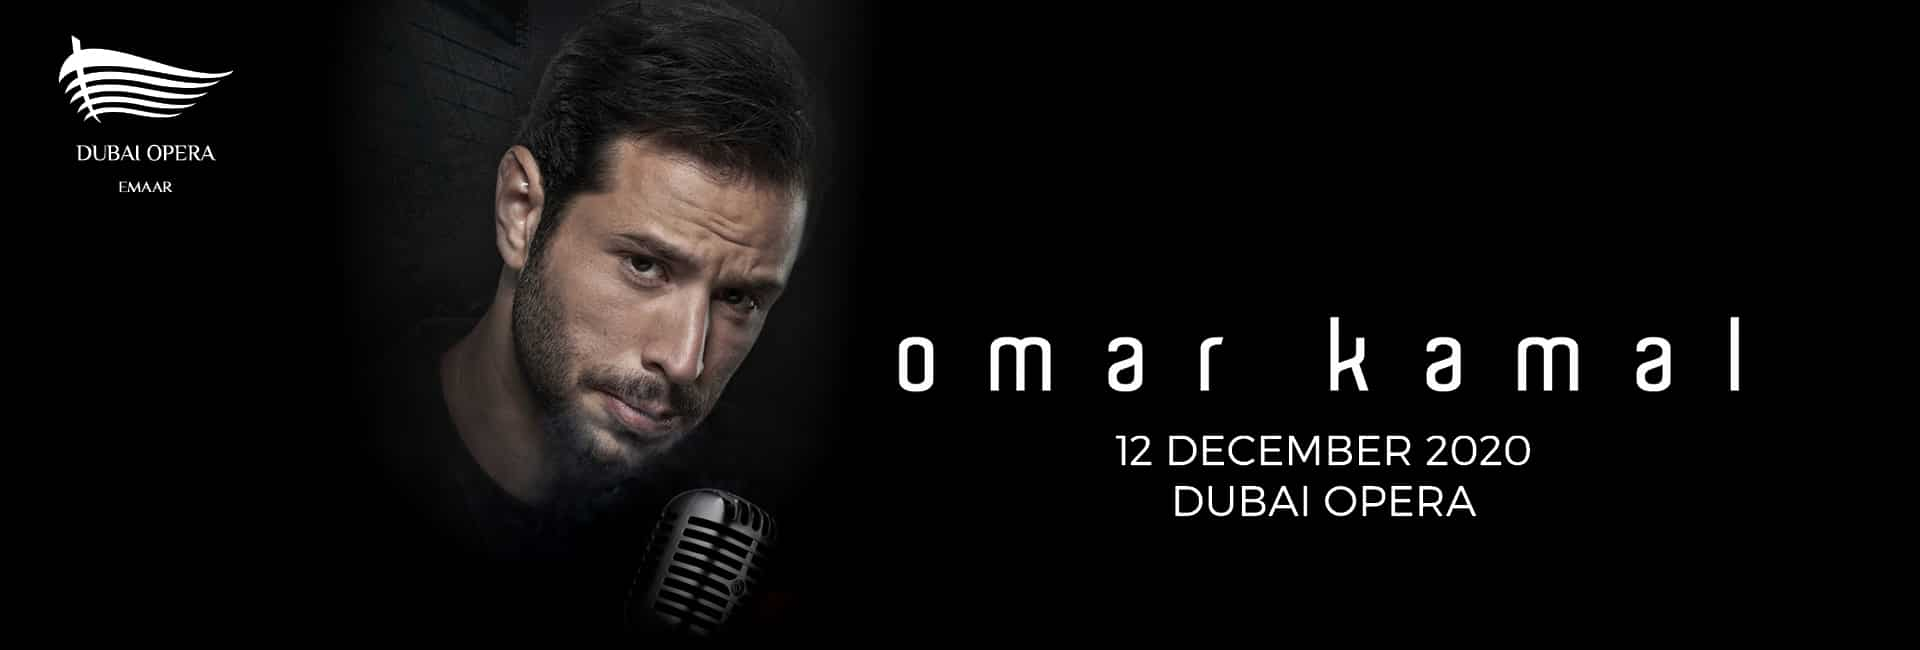 Omar Kamal at Dubai Opera 2020